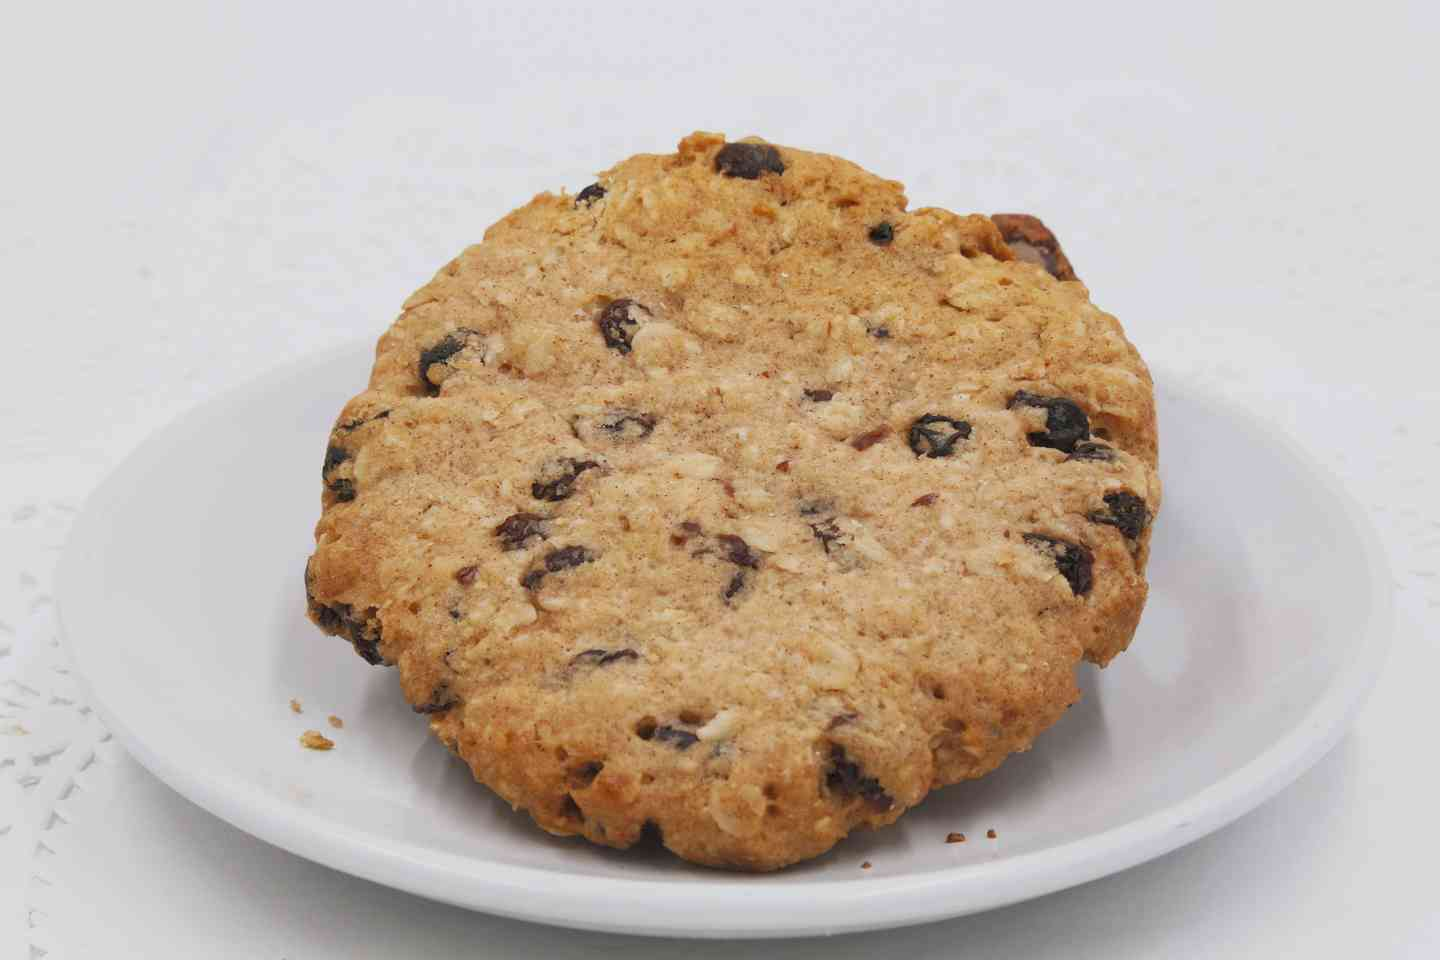 Gluten Free - Oatmeal Raisin Cookies